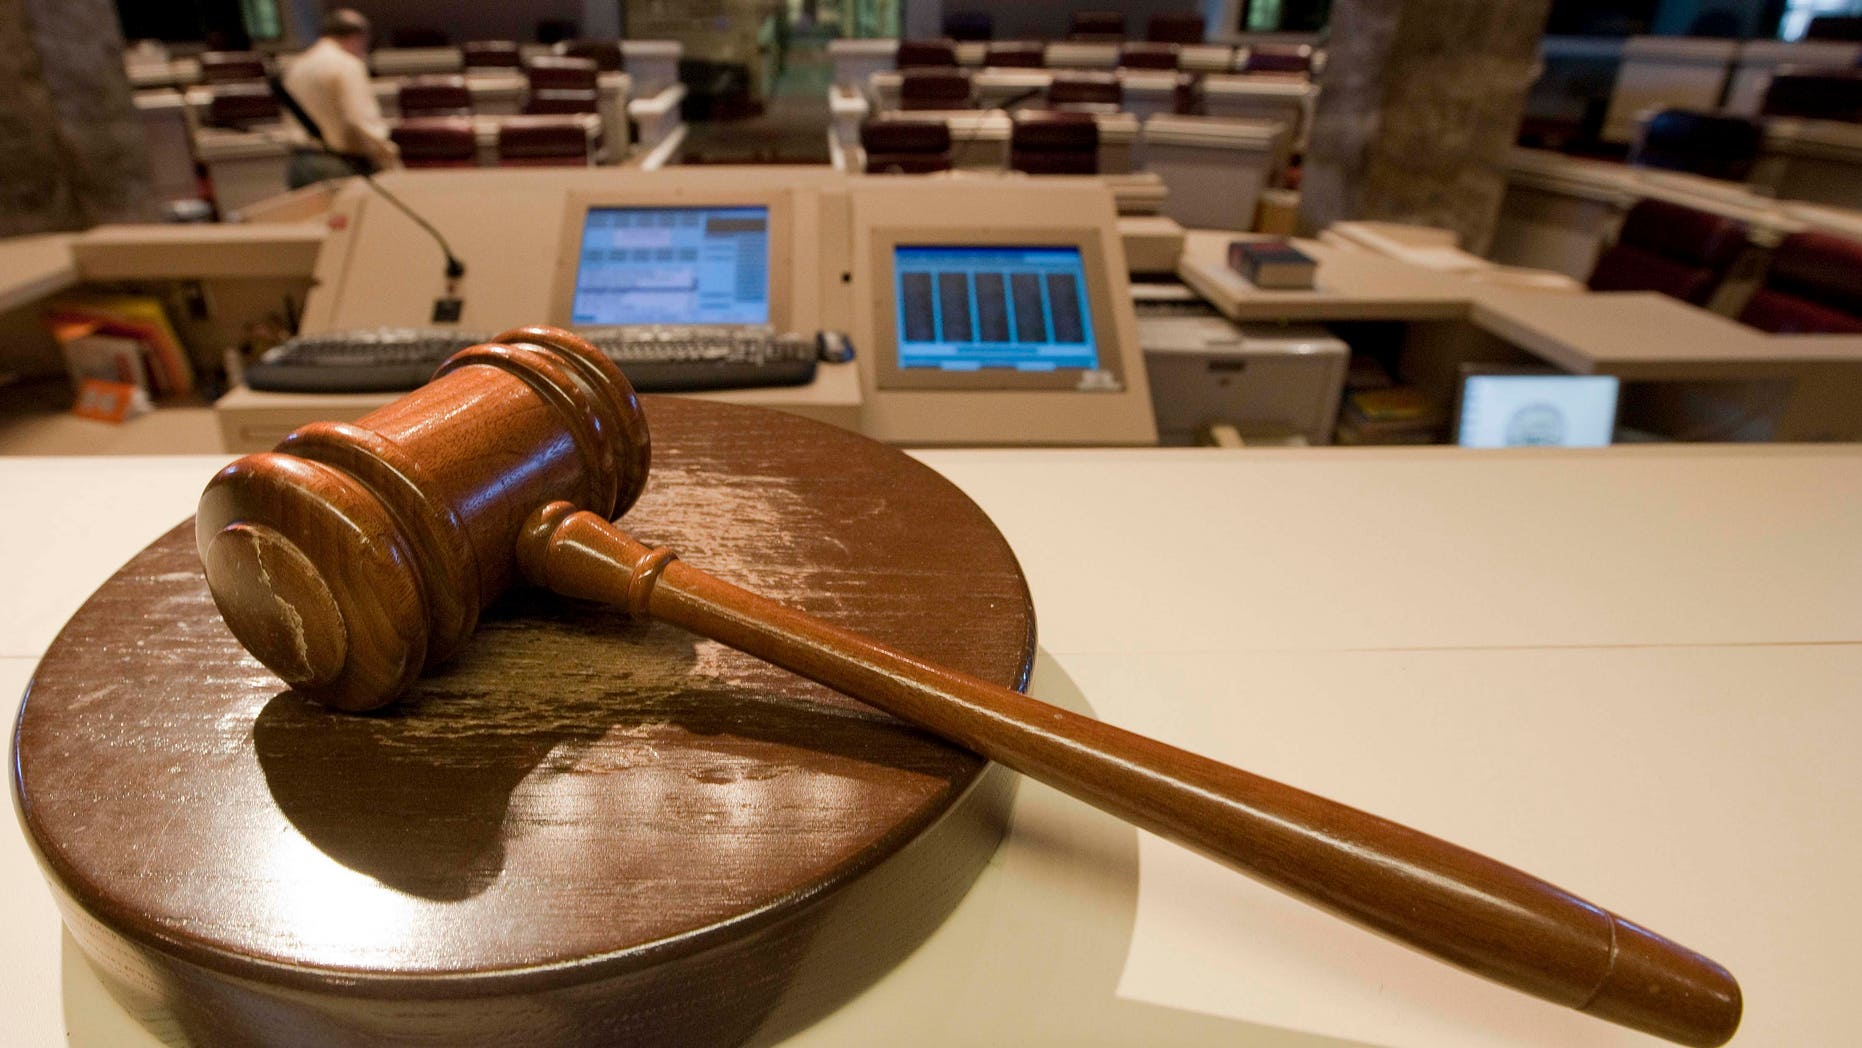 The gavel stands ready as Alabama House Public Information Officer Clay Redden, rear, makes preparations House chamber in Montgomery, Ala., on Friday, Dec. 3, 2010 a for the special session on ethics legislation called by Gov. Bob Riley.  The lawmakers come into session next Wednesday. (AP Photo/Dave Martin)